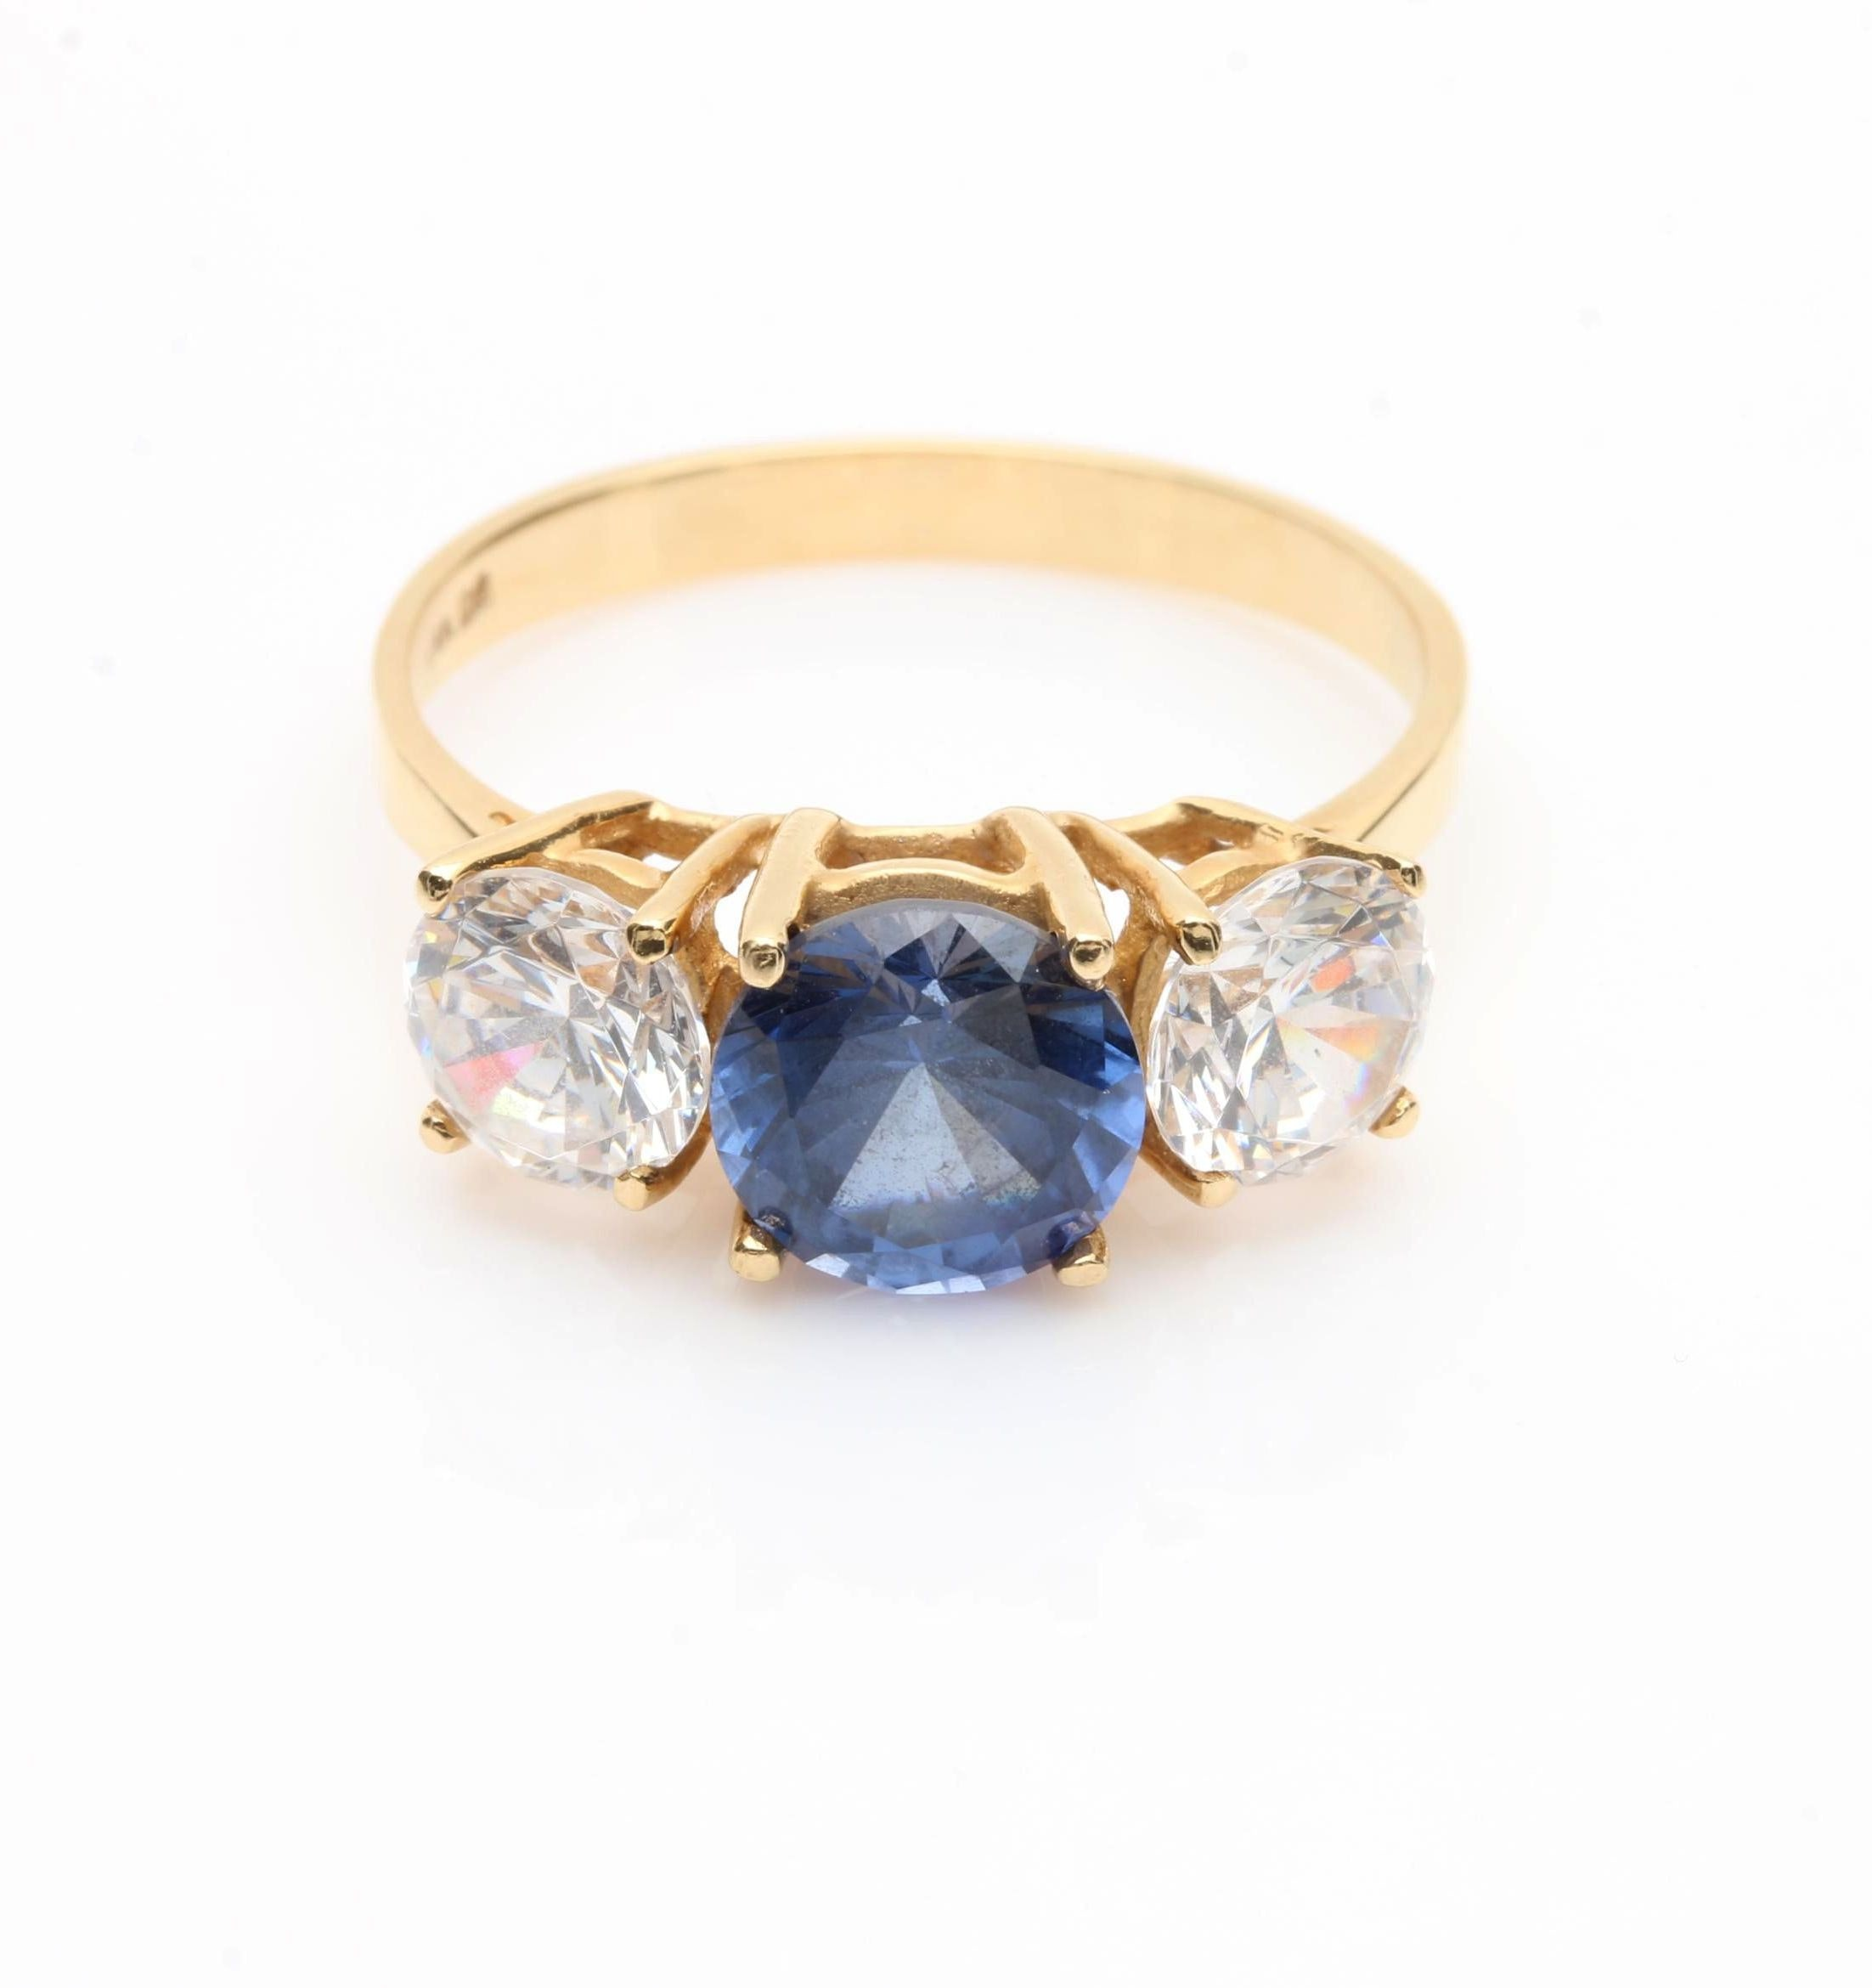 14K Yellow Gold Synthetic Sapphire and Cubic Zirconia Ring